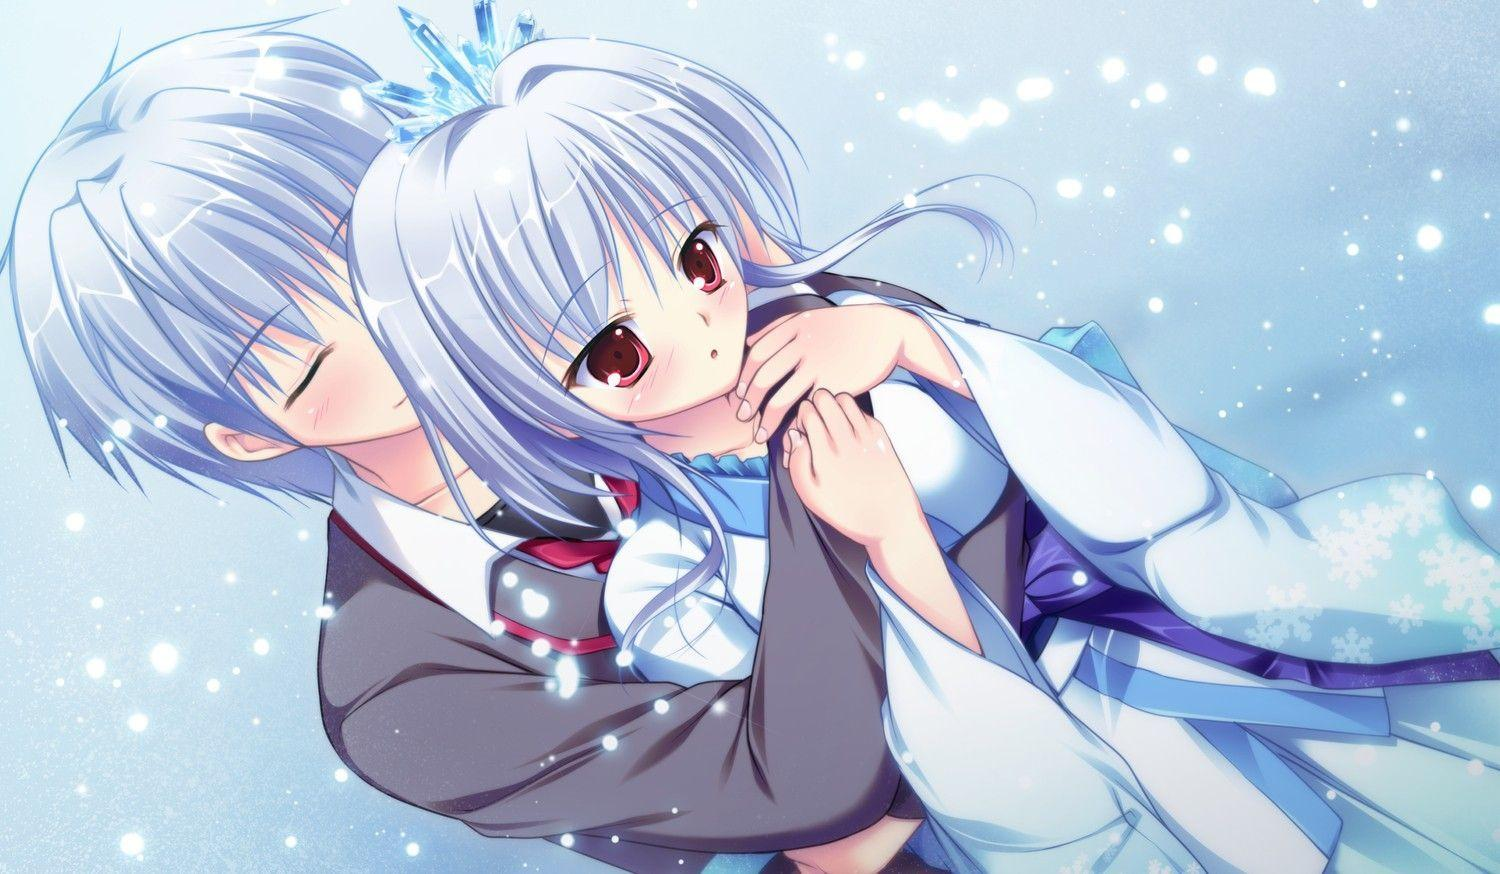 Loving Boy And Girl Hd Wallpapers Anime Love Wallpapers Wallpaper Cave